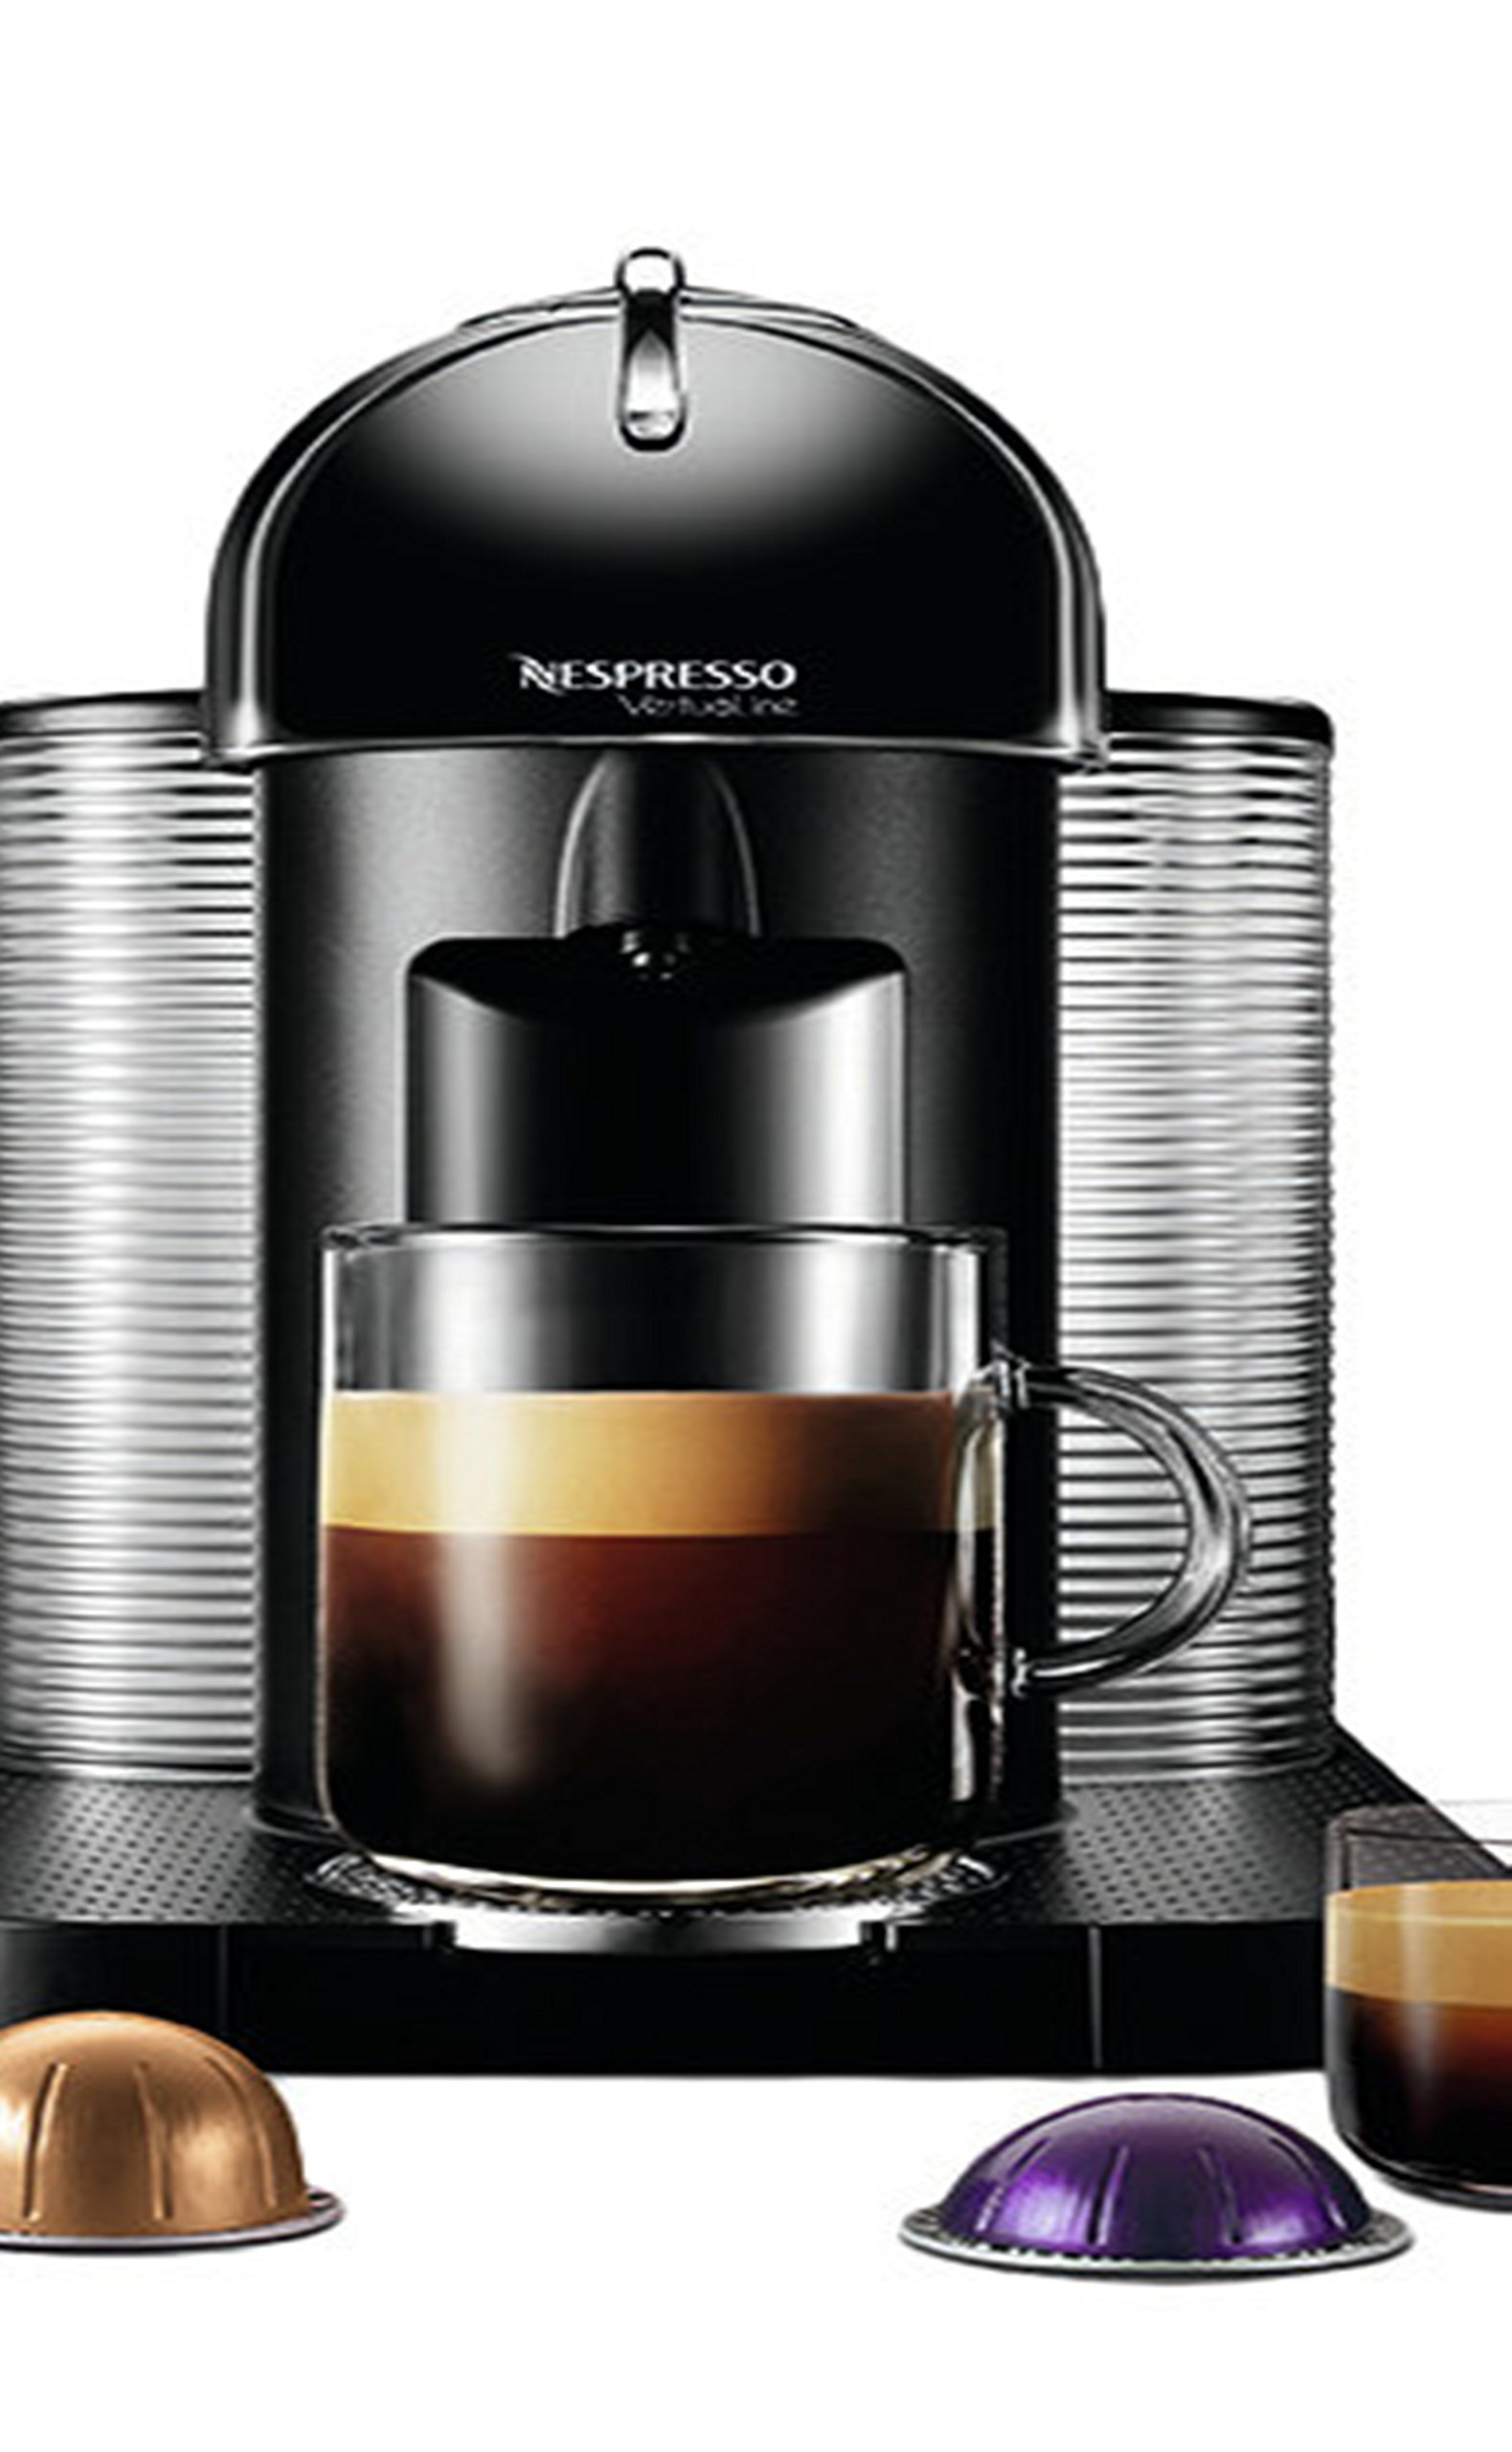 VertuoLine Coffee & Espresso Maker with Aeroccino+ Milk Frother- Rotative Opening/Closing- One Touch Operation- Automatic Ejection of Capsules- Plastic, aluminum, Black